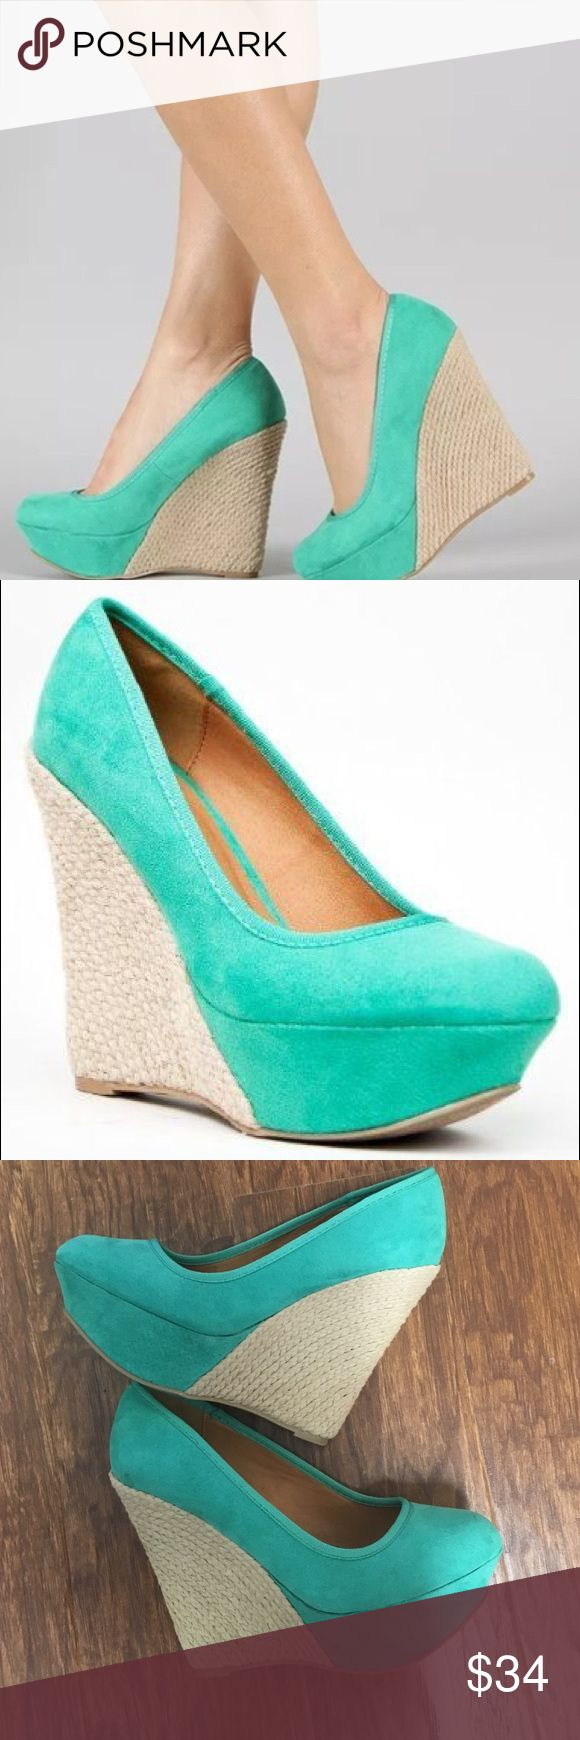 "Qupid mint green espadrilles Keep it casual in these sweet wedges. Features smooth faux suede upper, round toe front, stitching accents, braided espadrille platform and wedge heel. Slide style and finished with padded insole. ~Material: Faux Suede (man-made) ~Sole: Synthetic  heel height: 5"" w/ 1.5"" platform (approx) fitting tips: foot model is a true size 6, foot measures 8.9"" from heel to toe, width measures 2.5"". model's review: true to size. Original box may not be included. Qupid Shoes…"